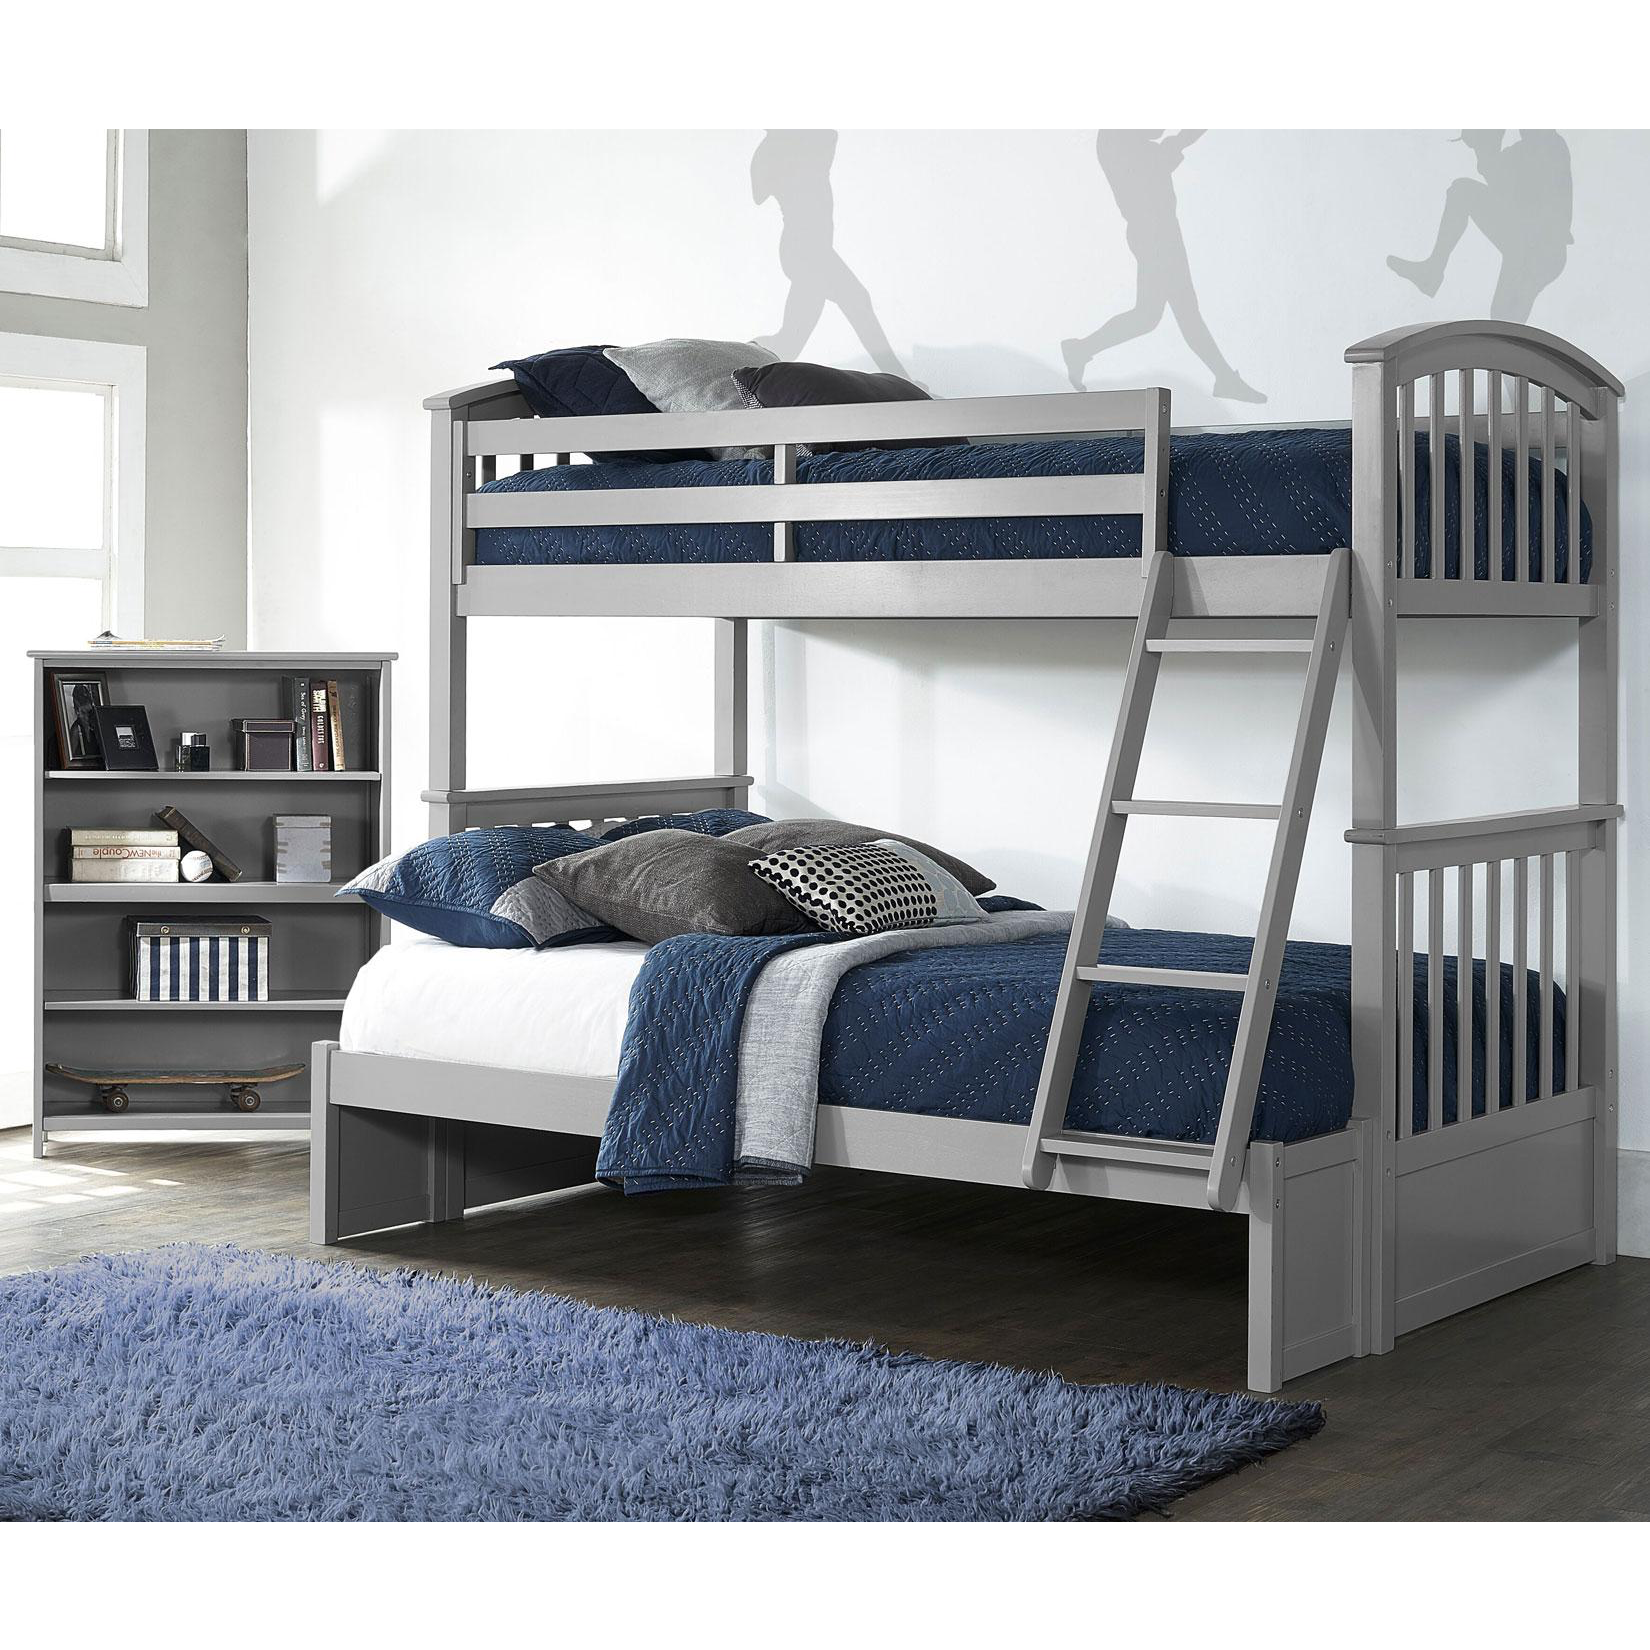 Sidney Gray Bunk Bed